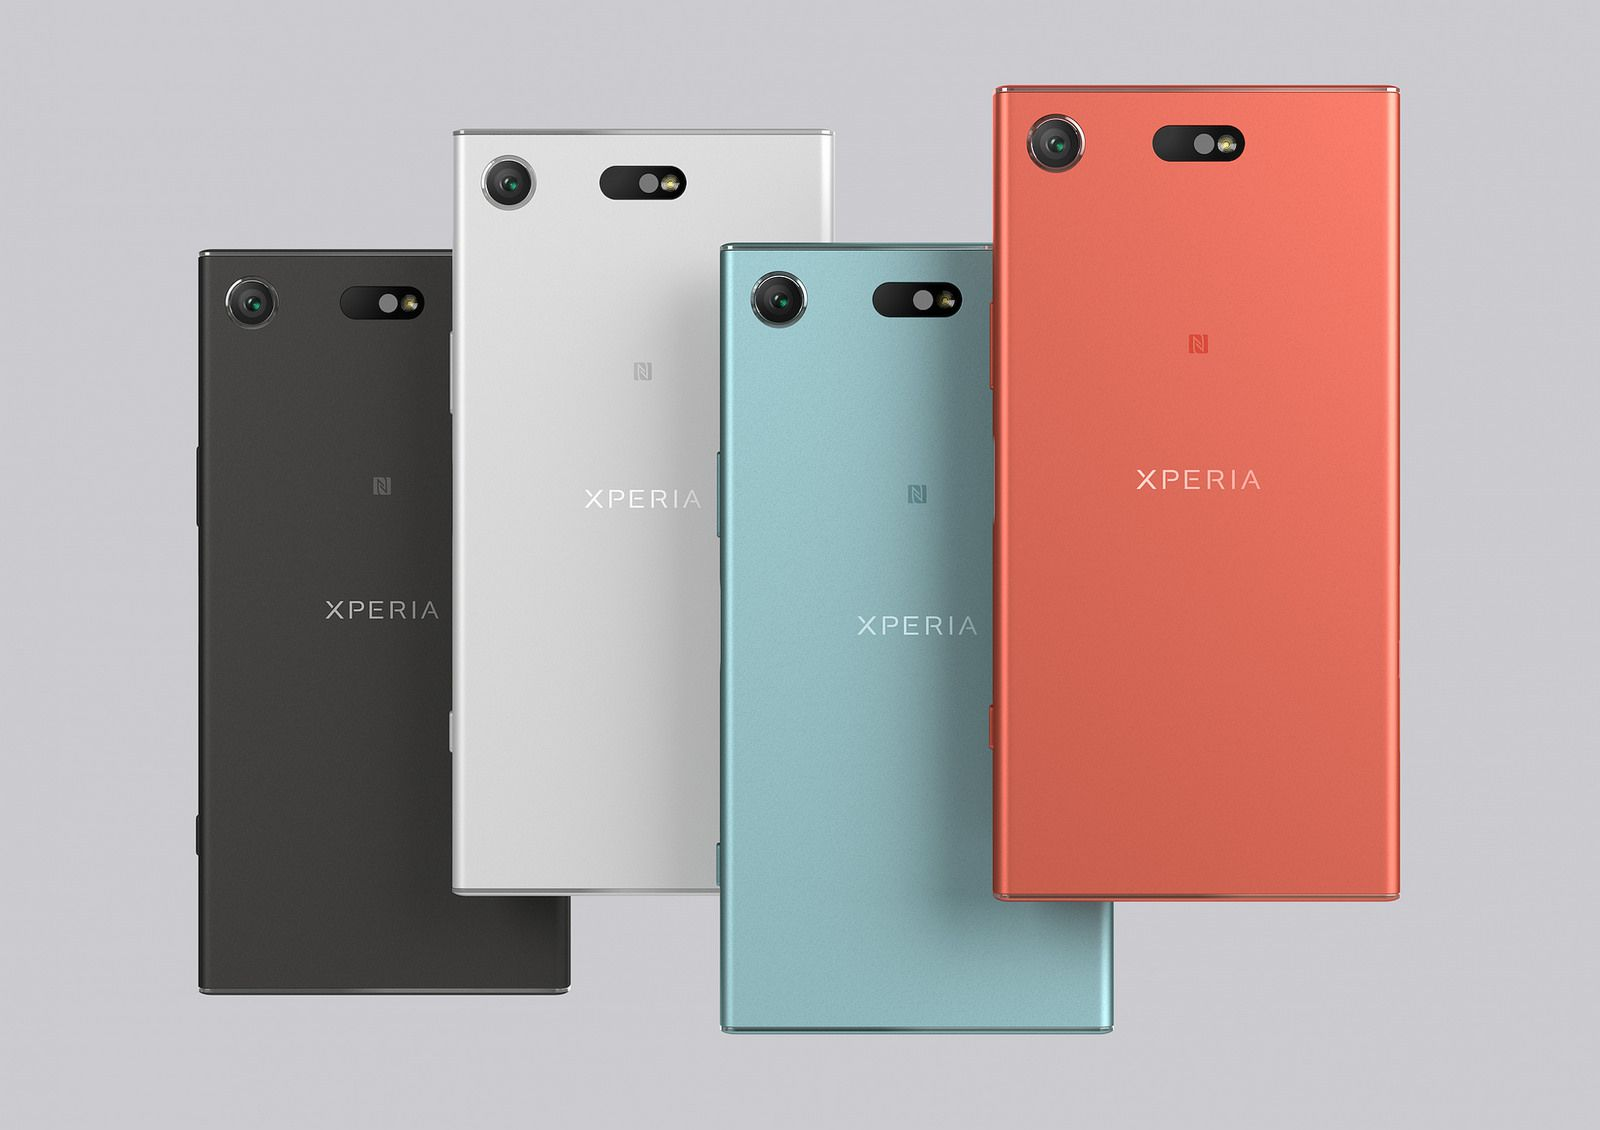 Sony Xperia XZ1 and Xperia XZ1 Compact smartphones sihmar (2)